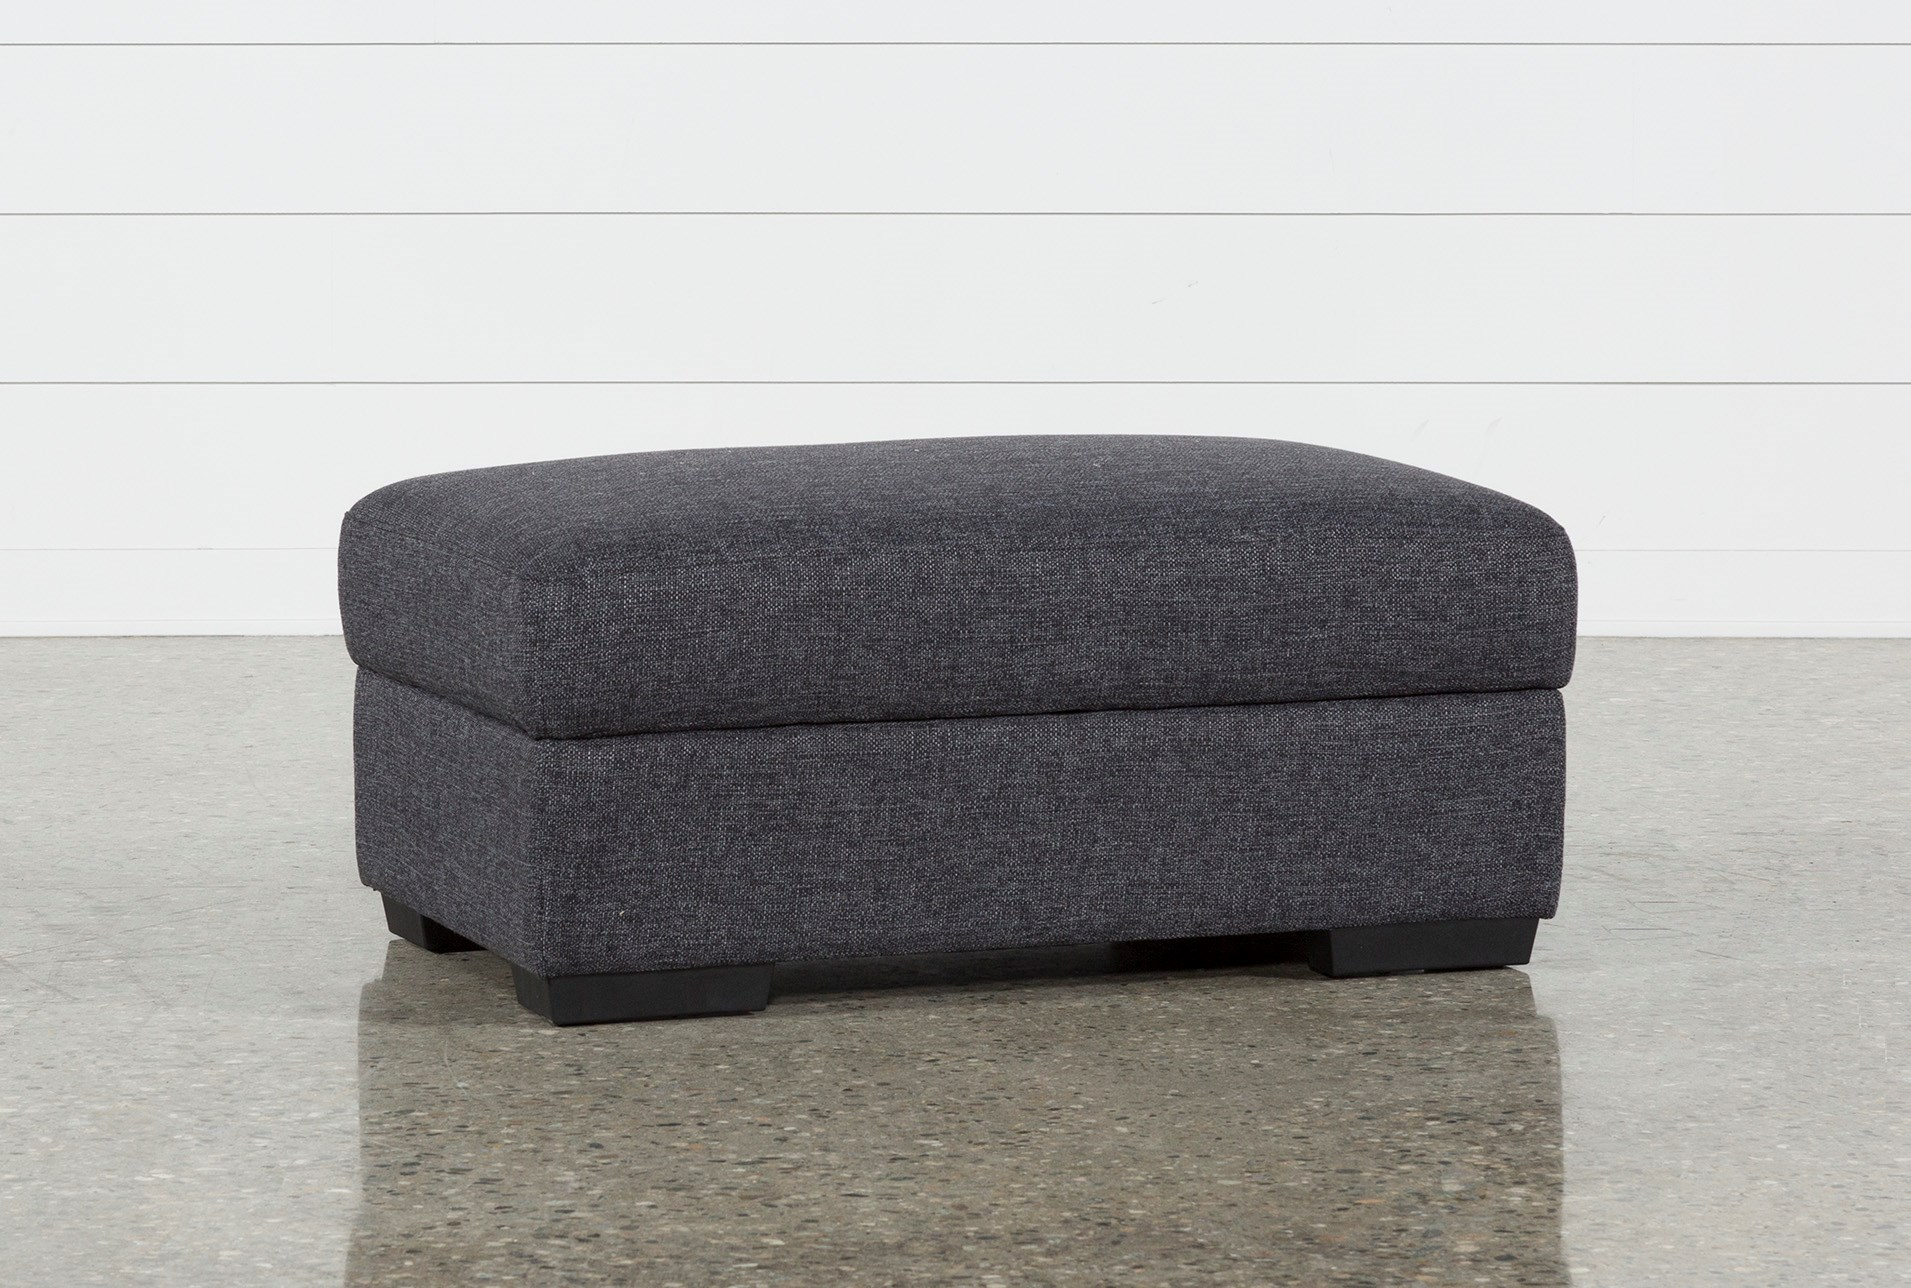 coffee linen overd blue ottoman oval cocktail upholstered brown leather padded round storage gray soft grey table tufted square uk dark white small bench velvet black